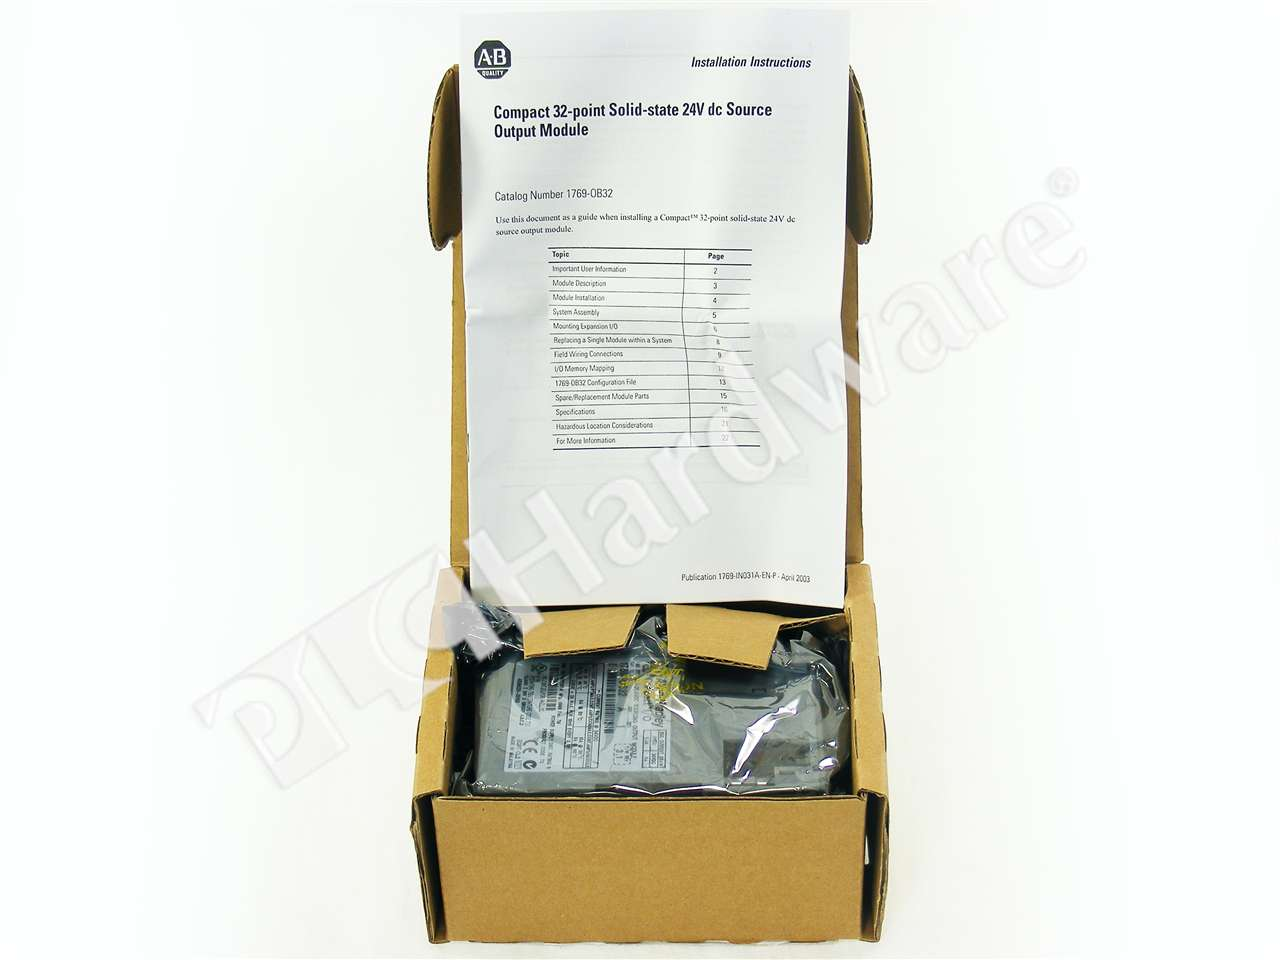 RA 1769 ob32 a NSO_2_10_06_08_22_09_b plc hardware allen bradley 1769 ob32 compactlogix 32 output 1769-ob32 wiring diagram at mifinder.co